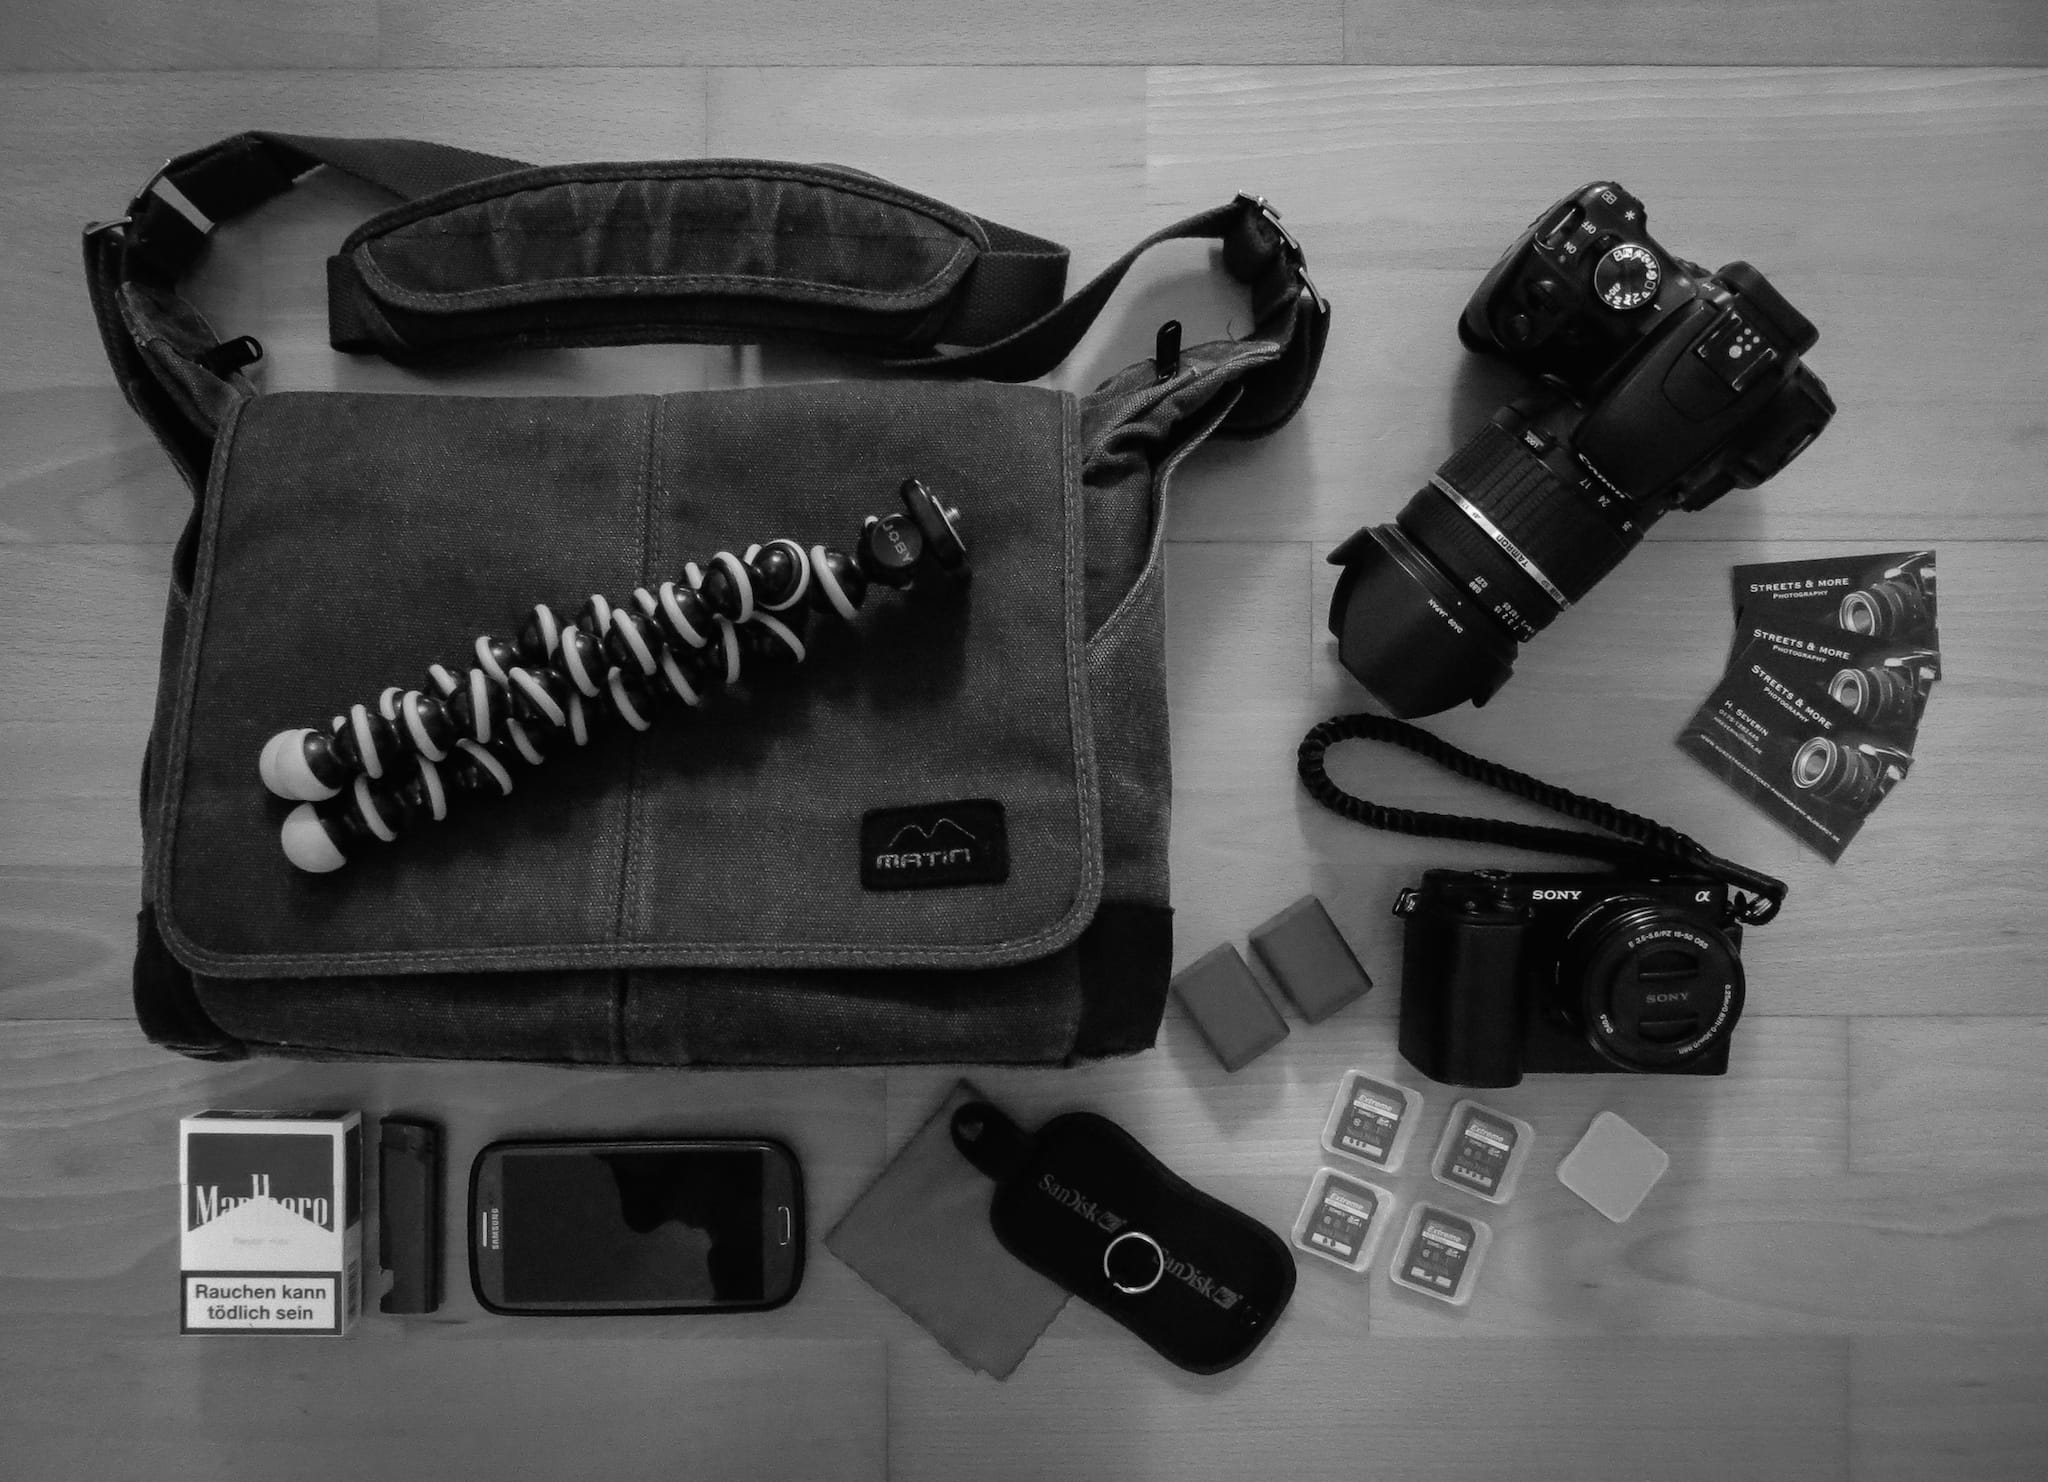 Hans Severin's Camera Bag